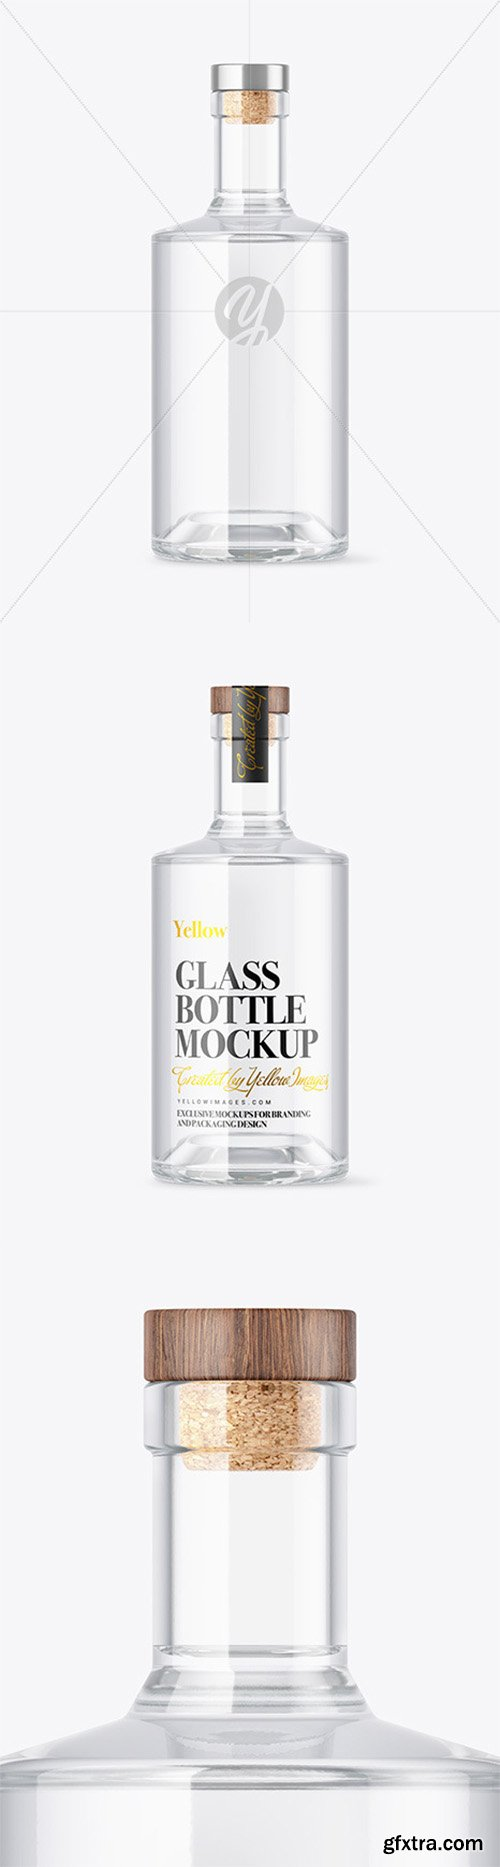 Clear Glass Vodka Bottle with Wooden Cap Mockup 80771